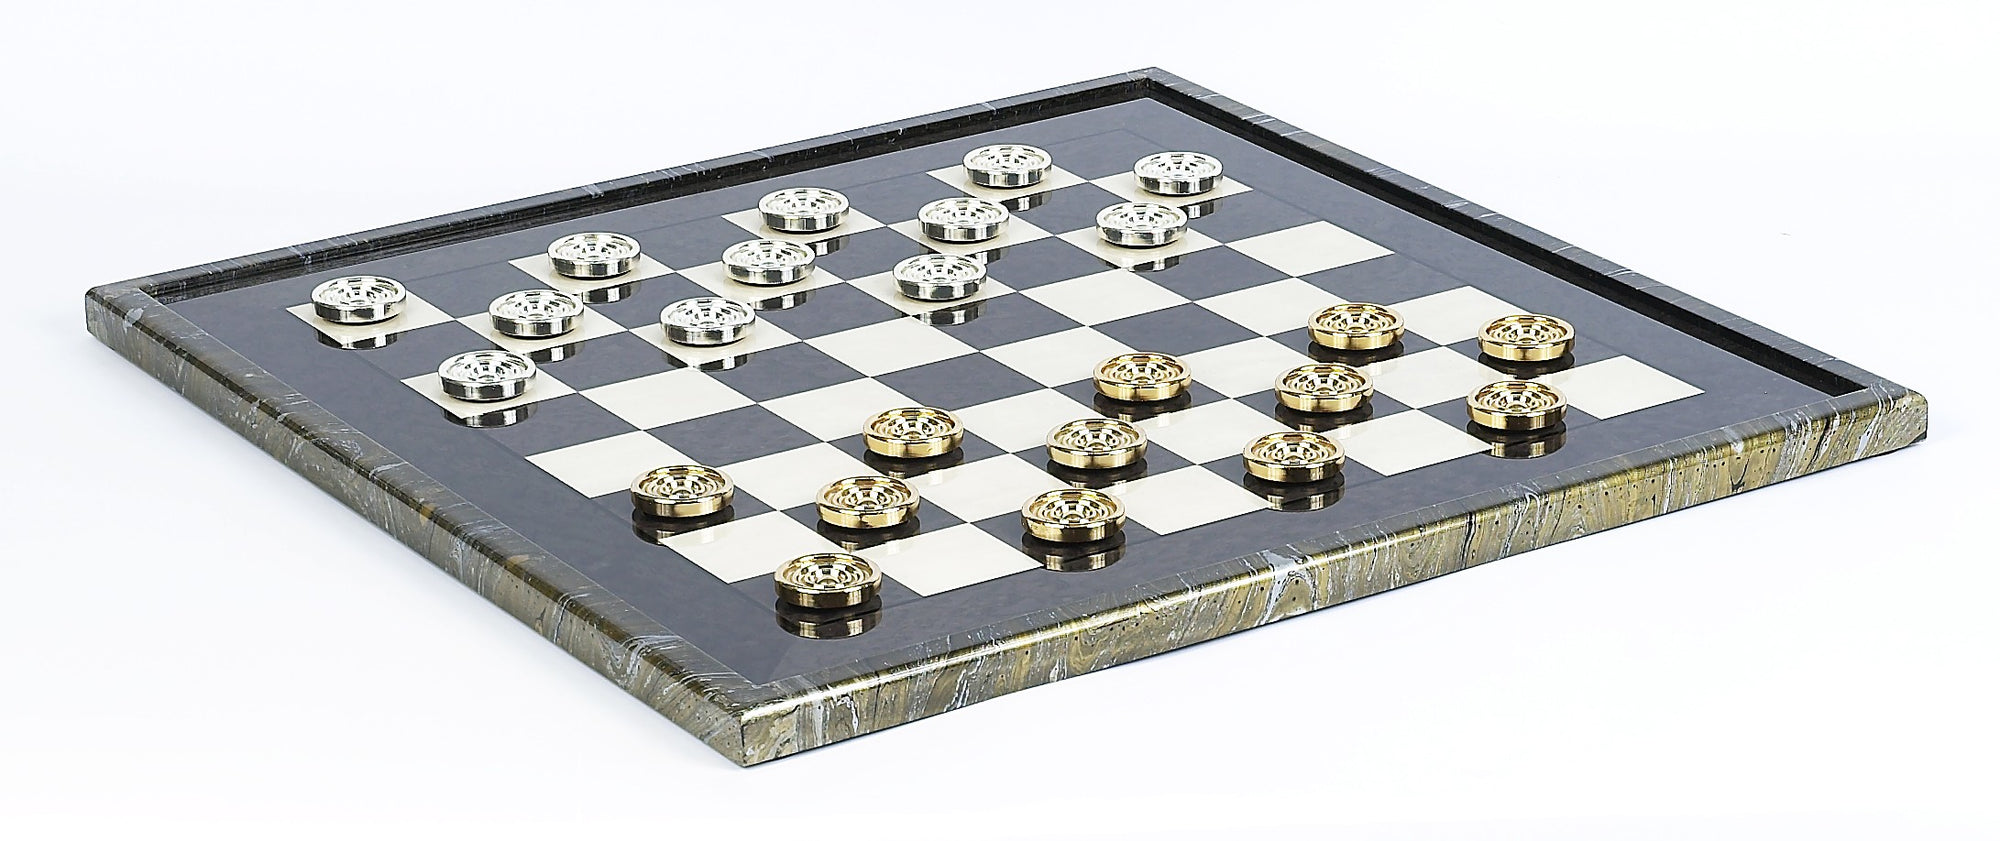 Giant Gold and silver Checkers on Magnificent Board